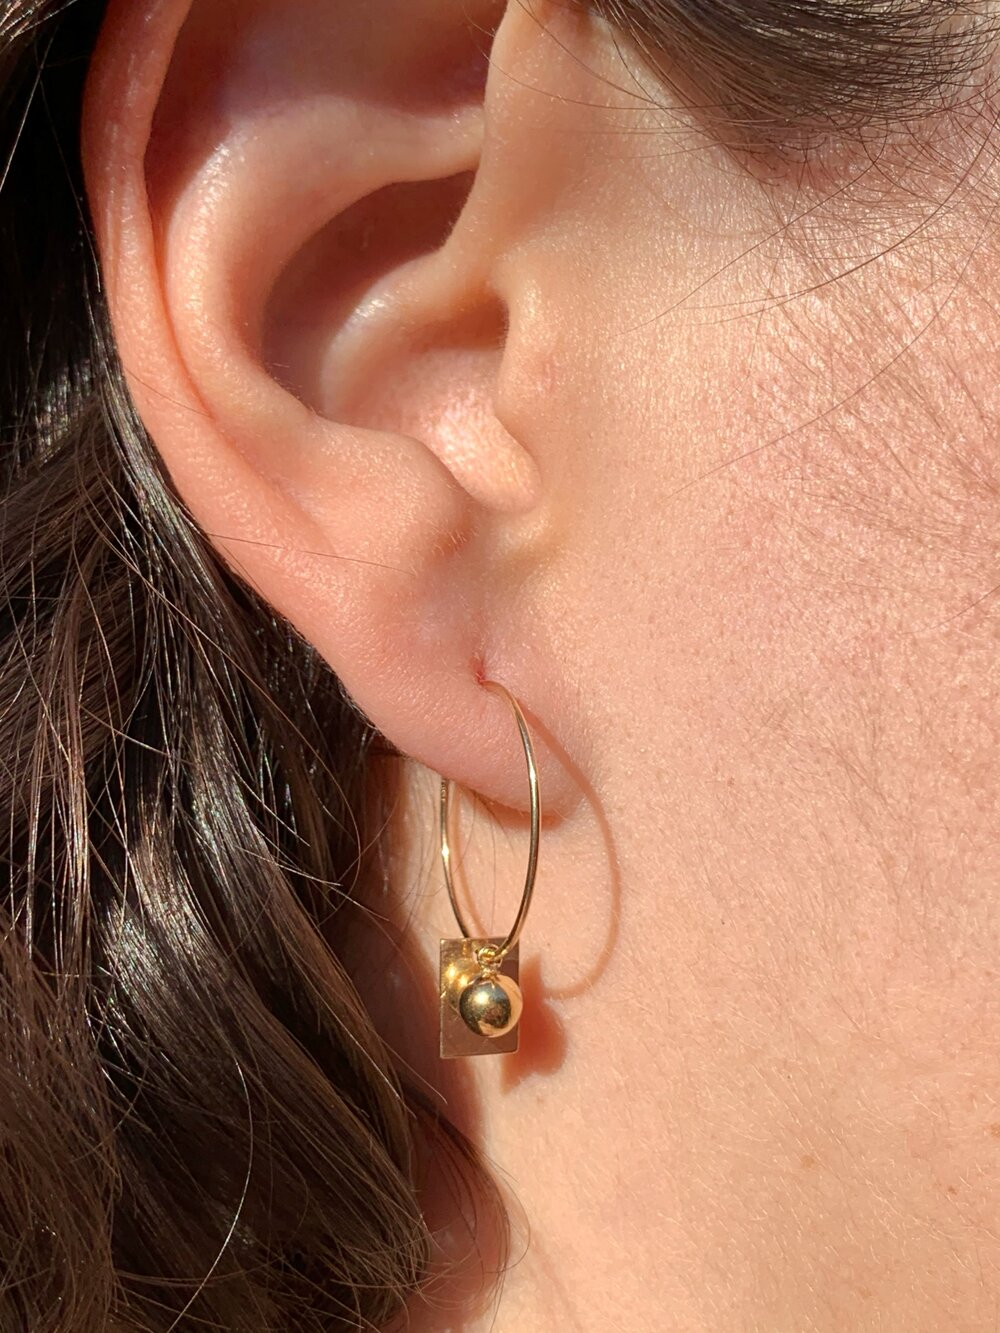 Handmade gold hoops. Two dimensions come together delicately for these everyday hoops.